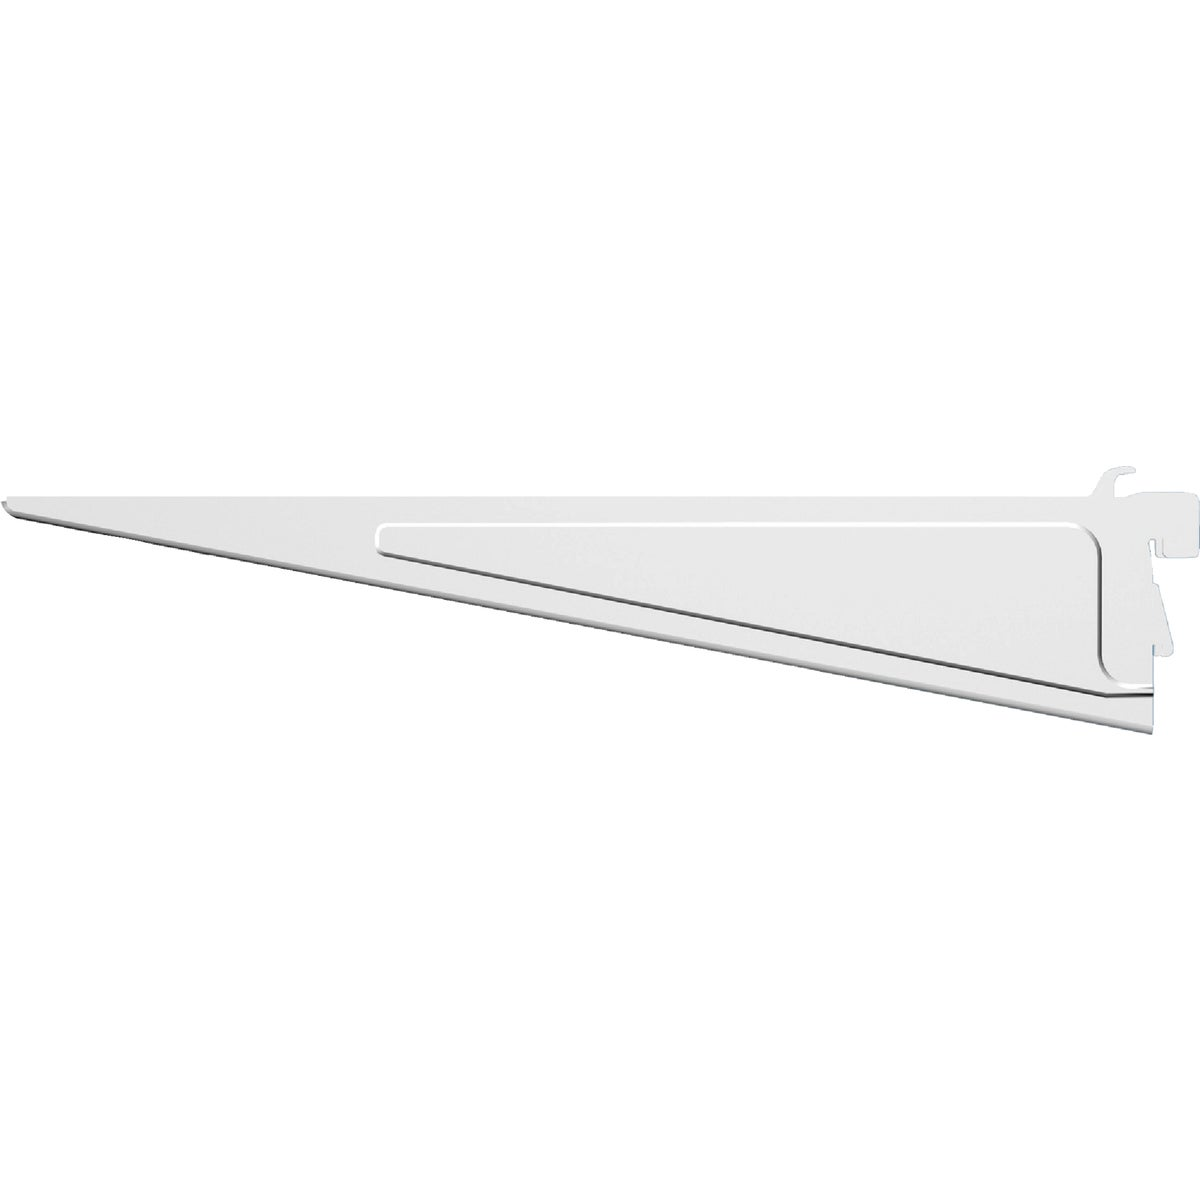 "12"" CLOSET SHELF BRACKET"